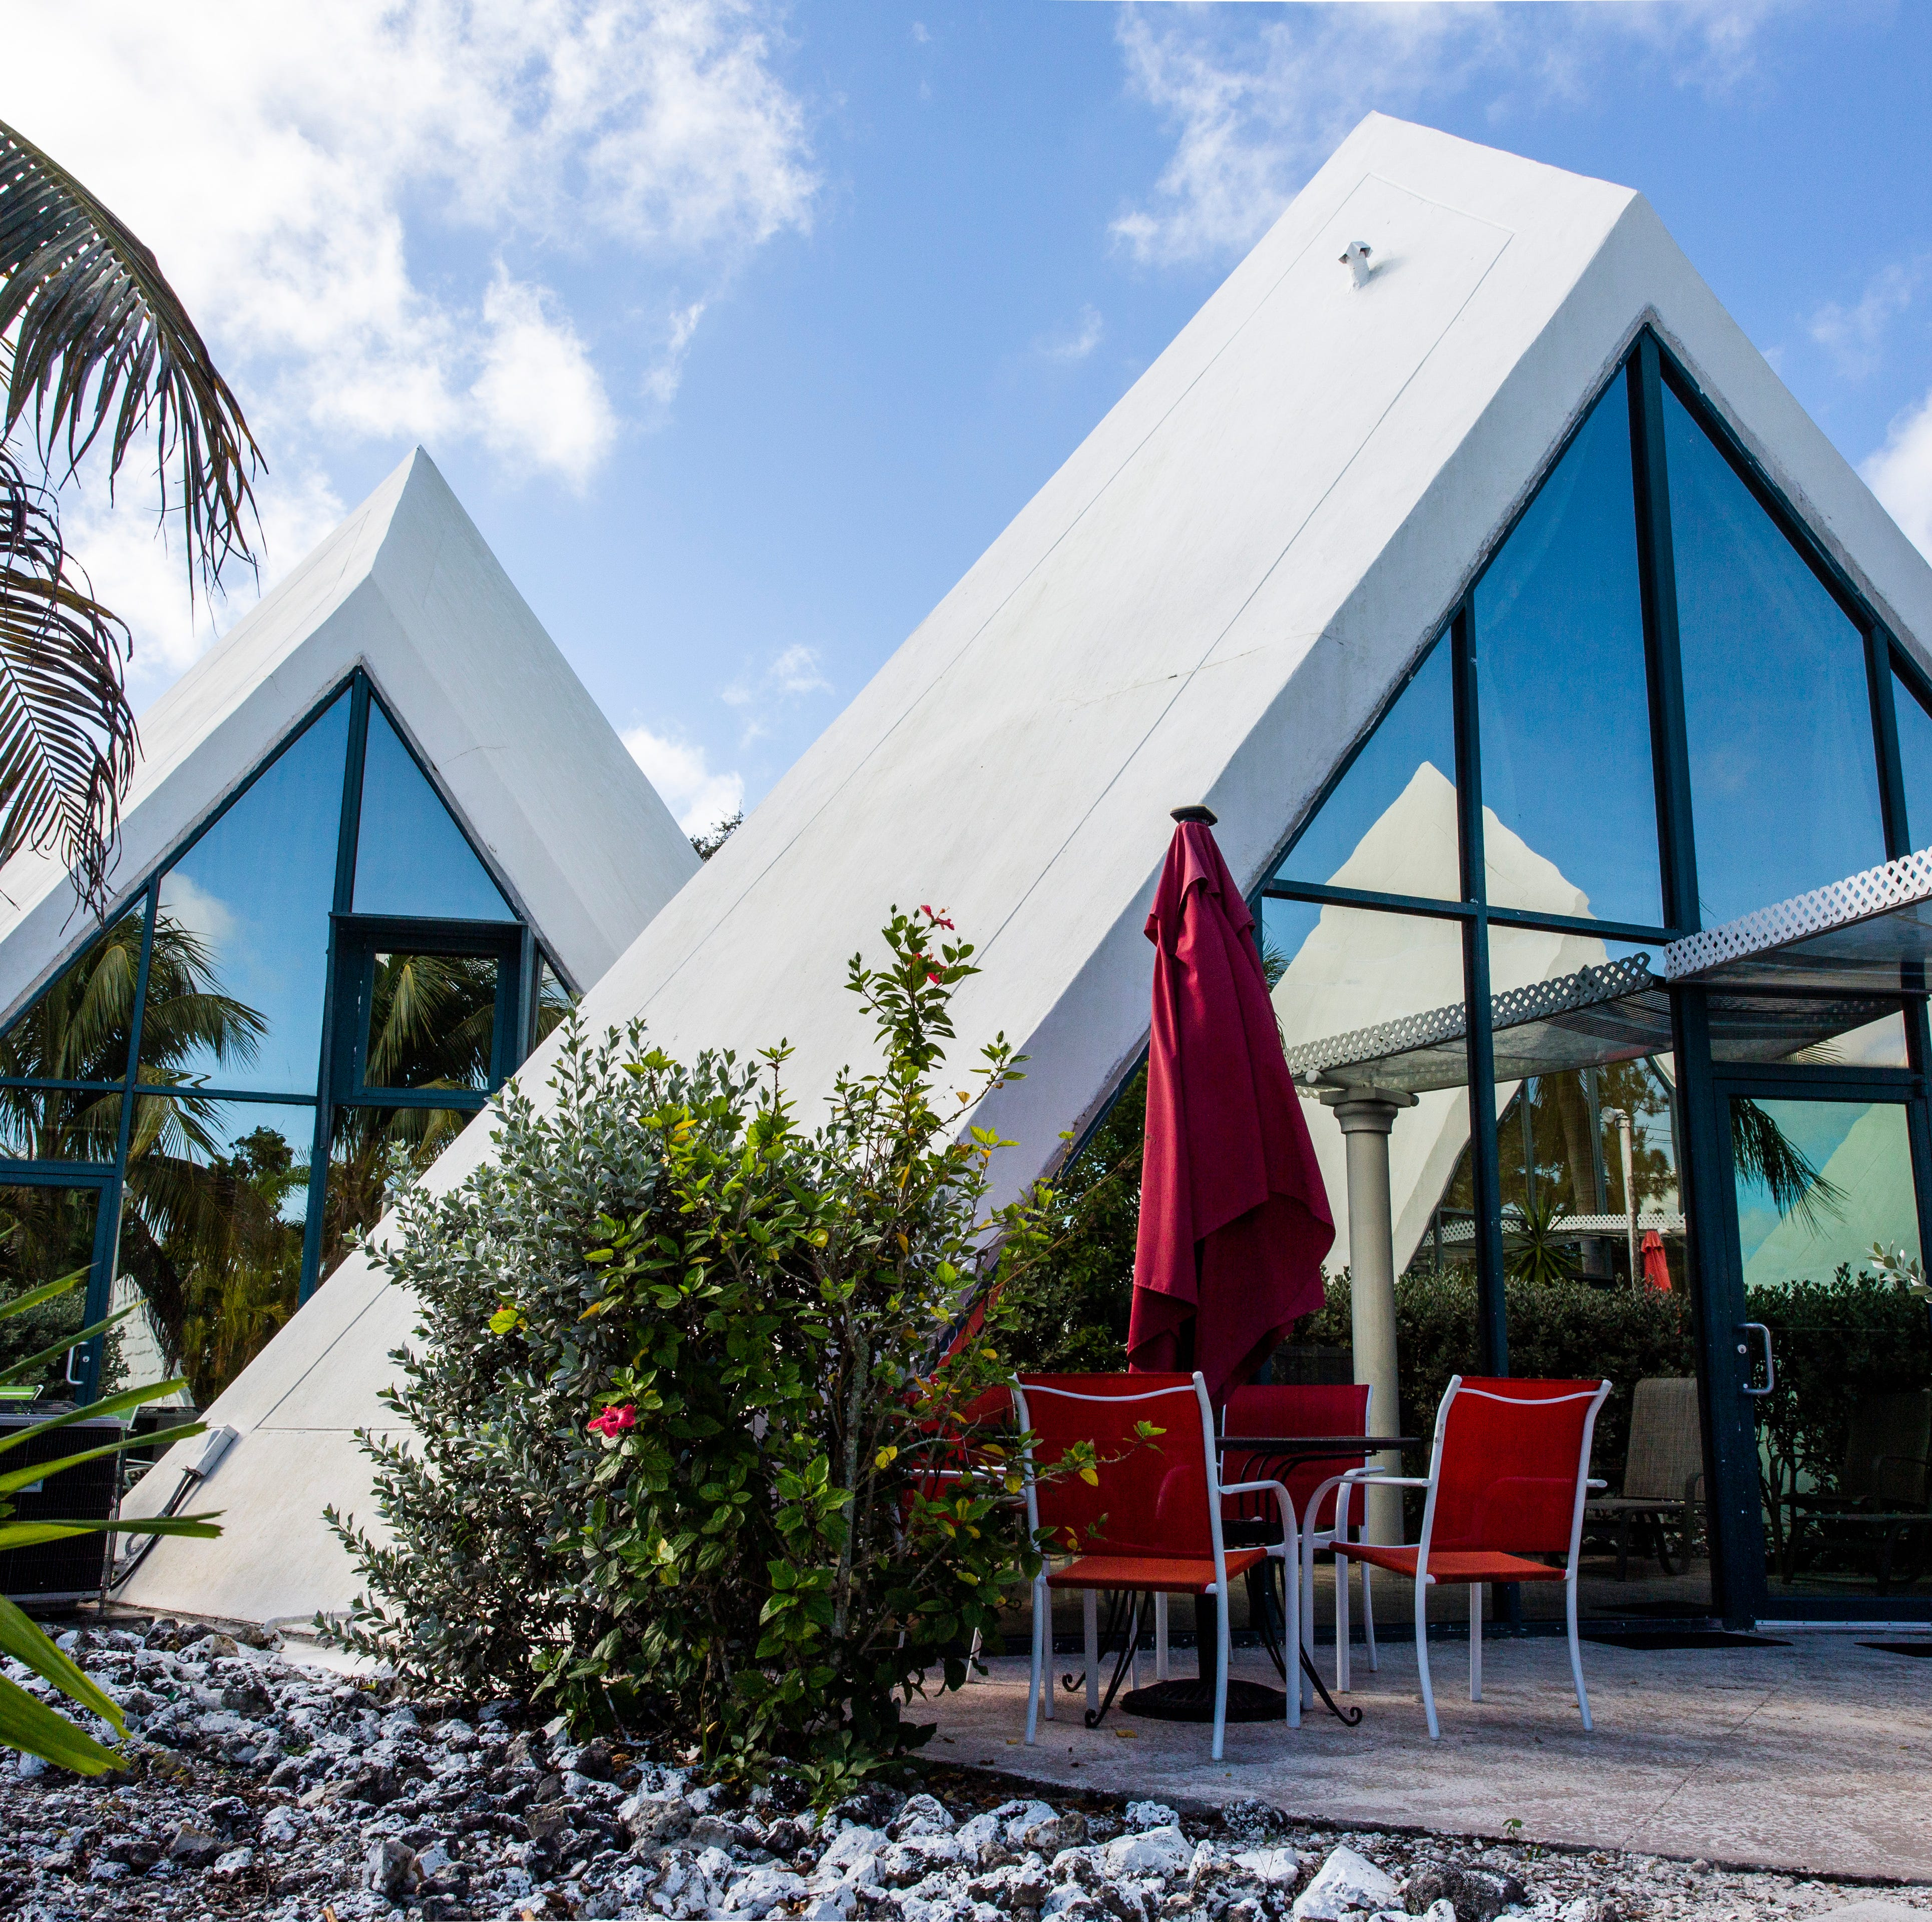 Airbnb hosts in Southwest Florida offer unique experiences for visitors